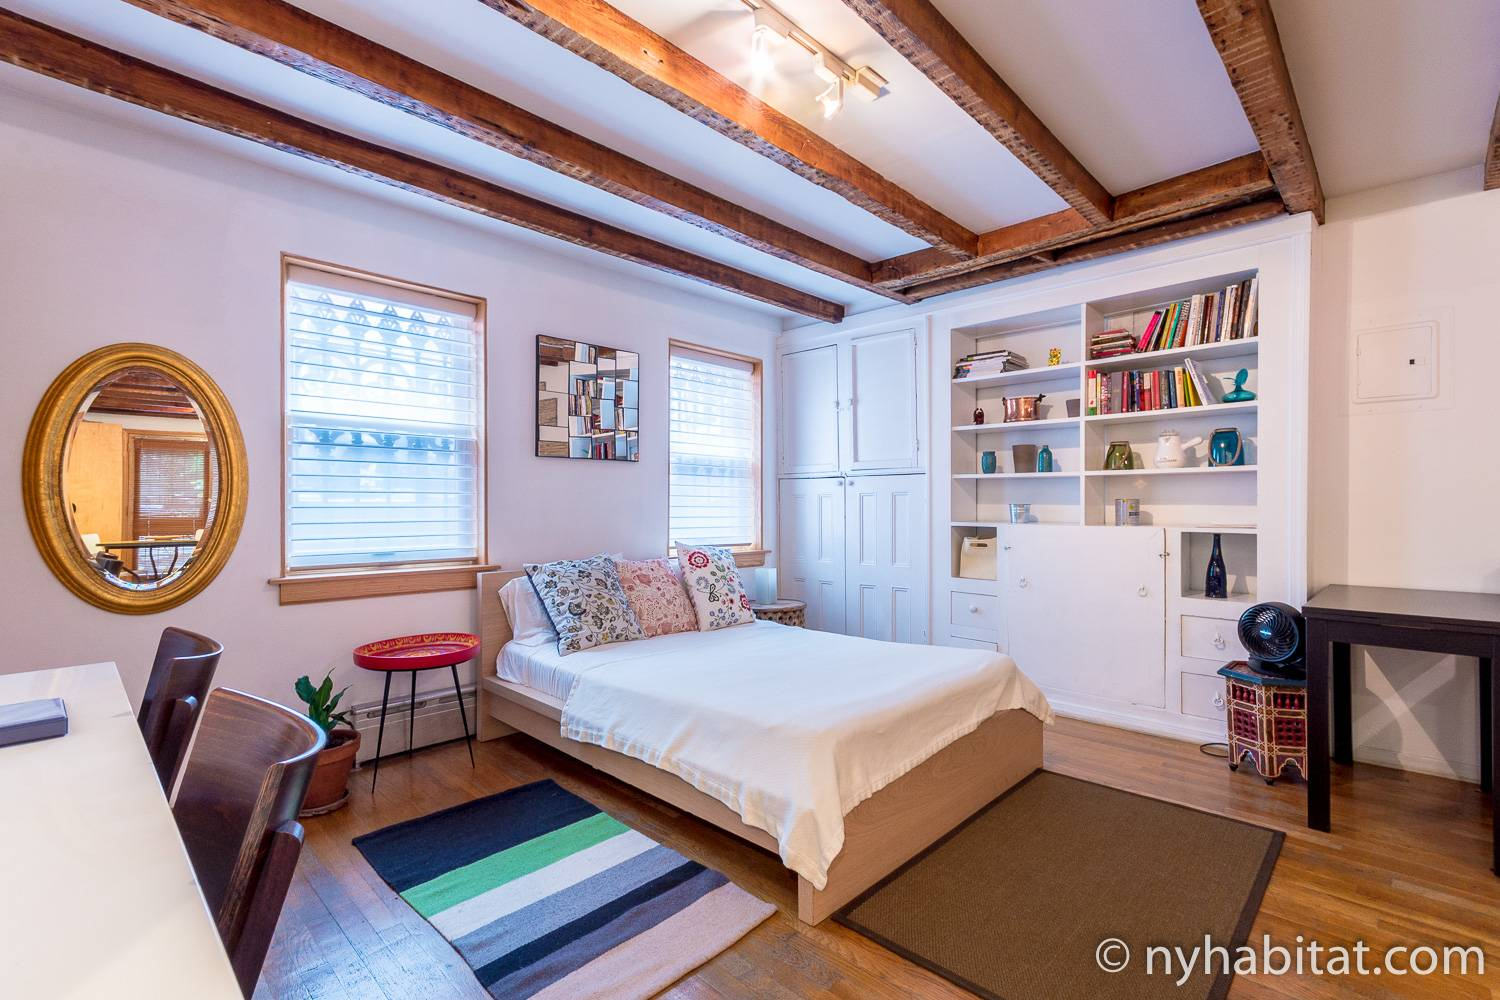 An image of a bed and built-in bookshelves in a studio apartment (NY-10856) in Williamsburg, Brooklyn.